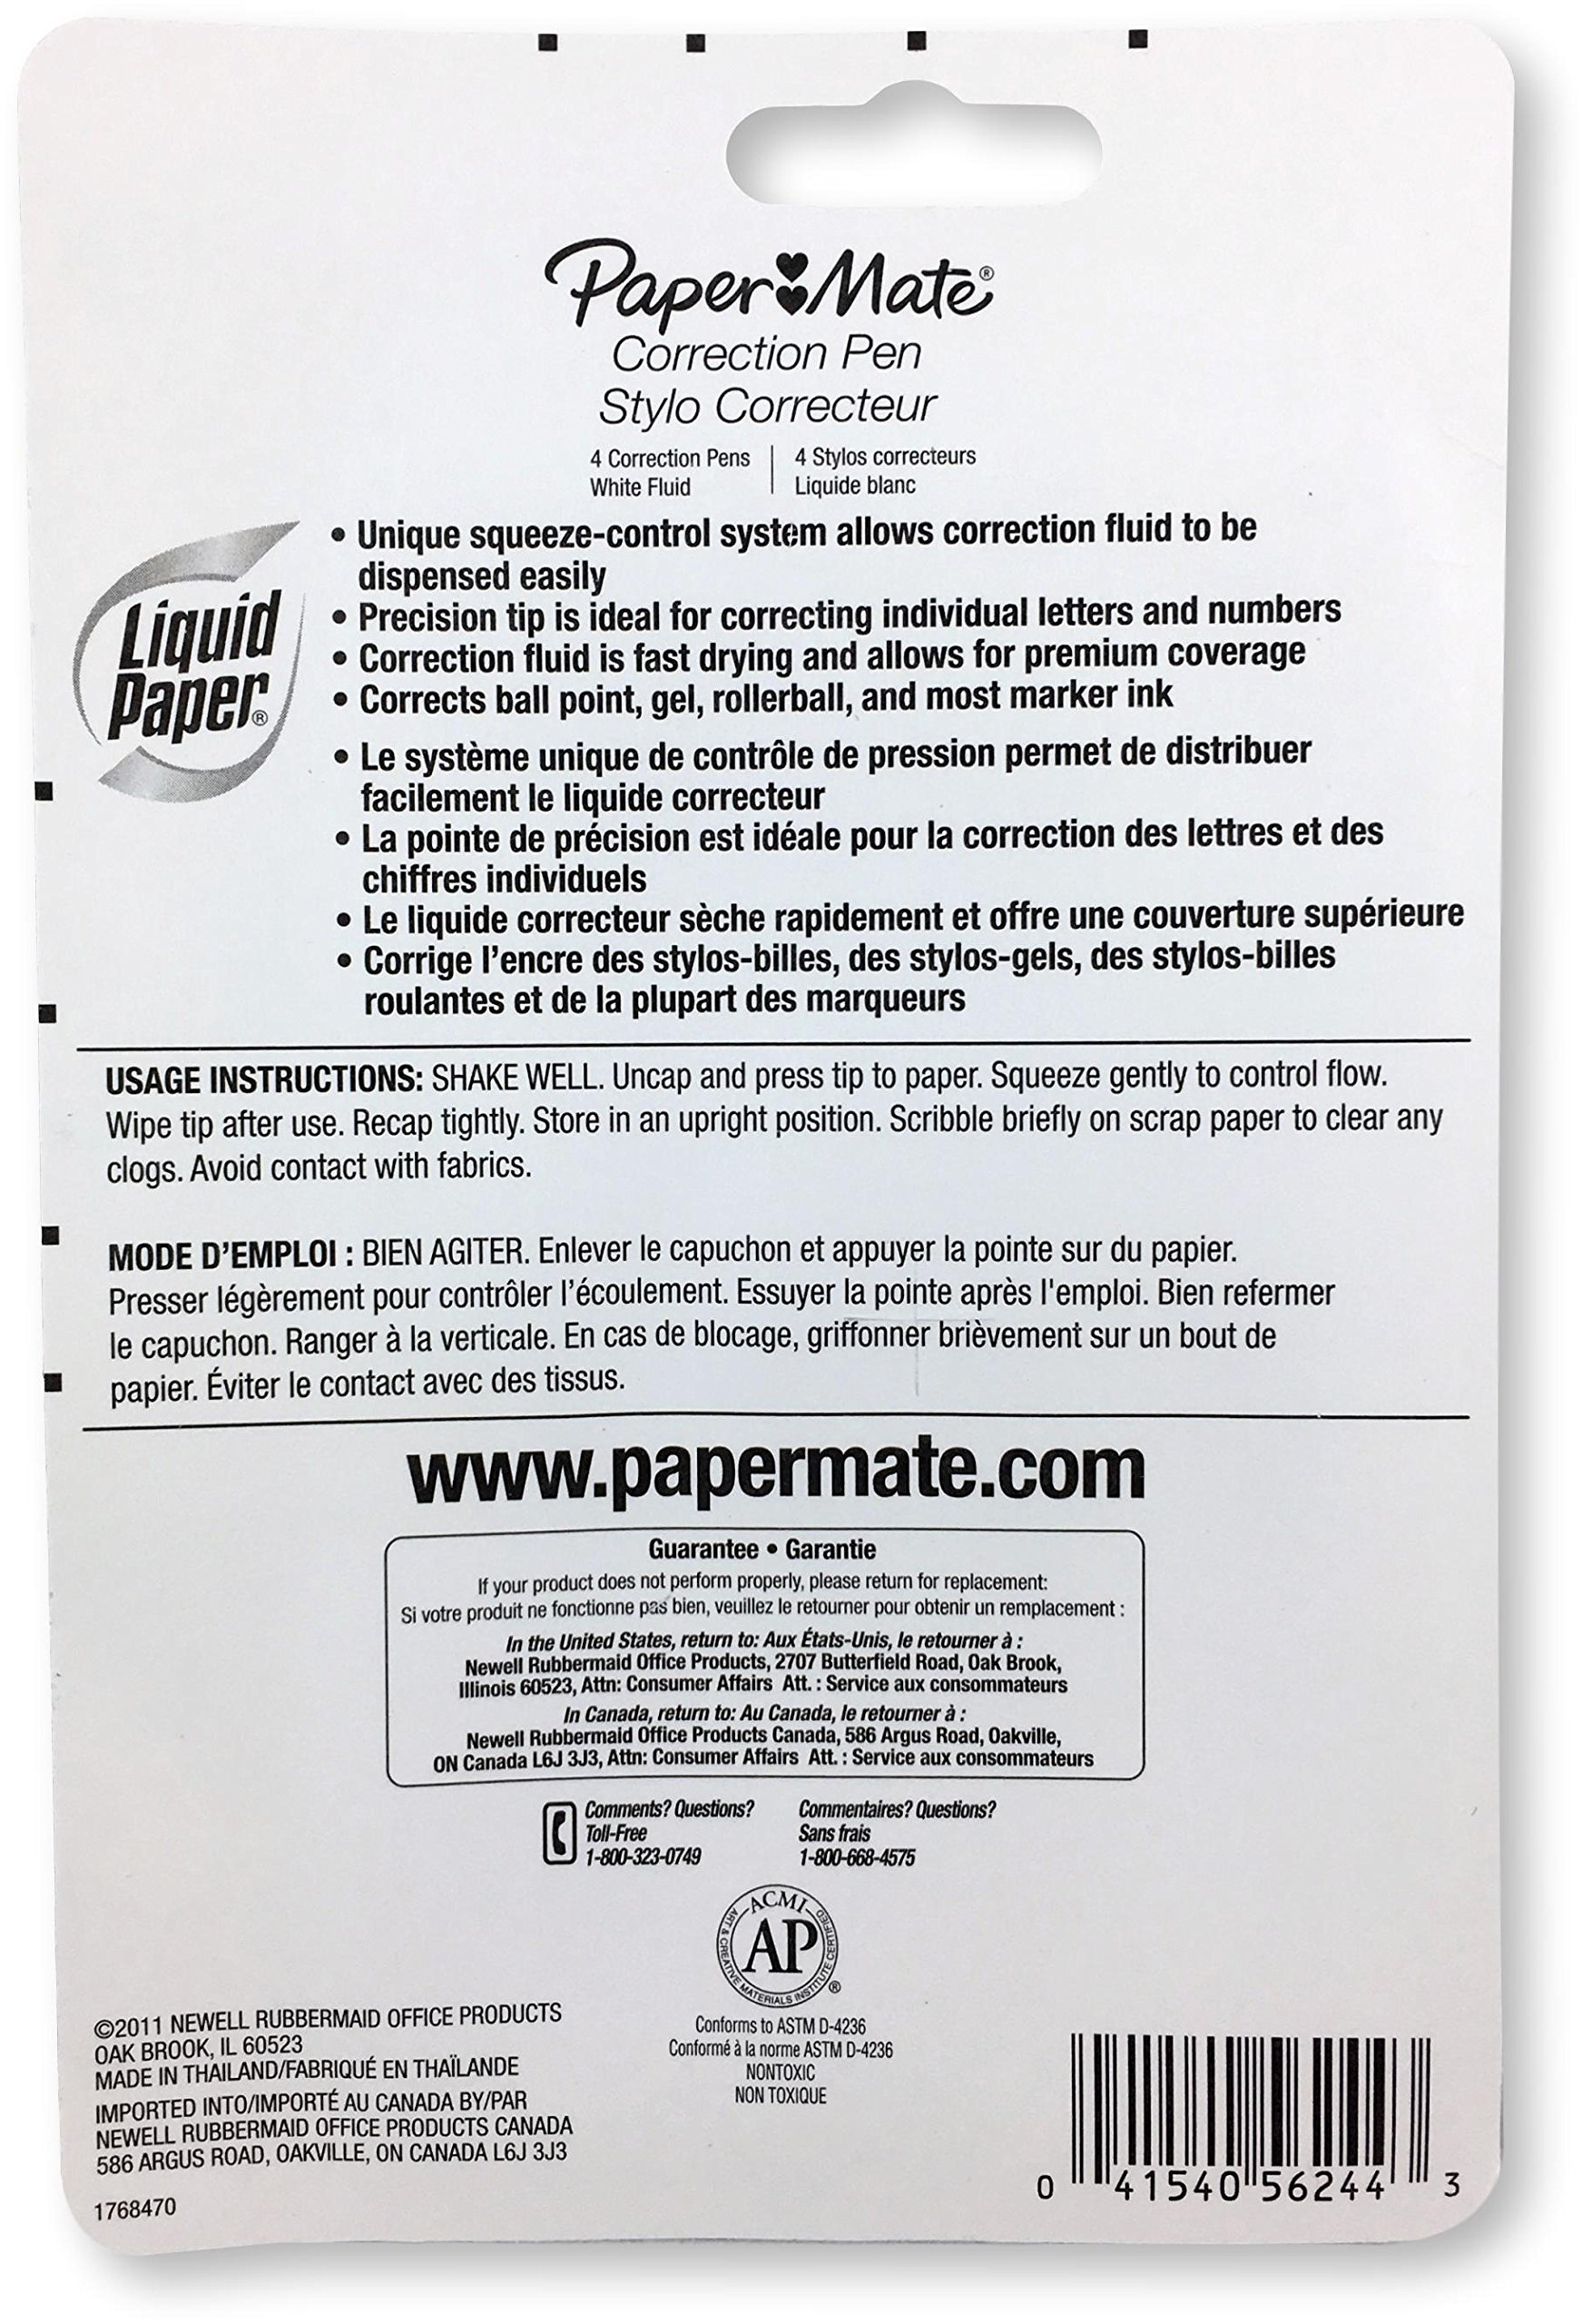 Paper Mate 5624415 Liquid Paper Correction Pen, 0.24 Ounces, Unique Squeeze-Control System, Precision Tip, Fast Drying Correction Fluid, Premium Coverage, Pack of 4 by Paper Mate (Image #2)